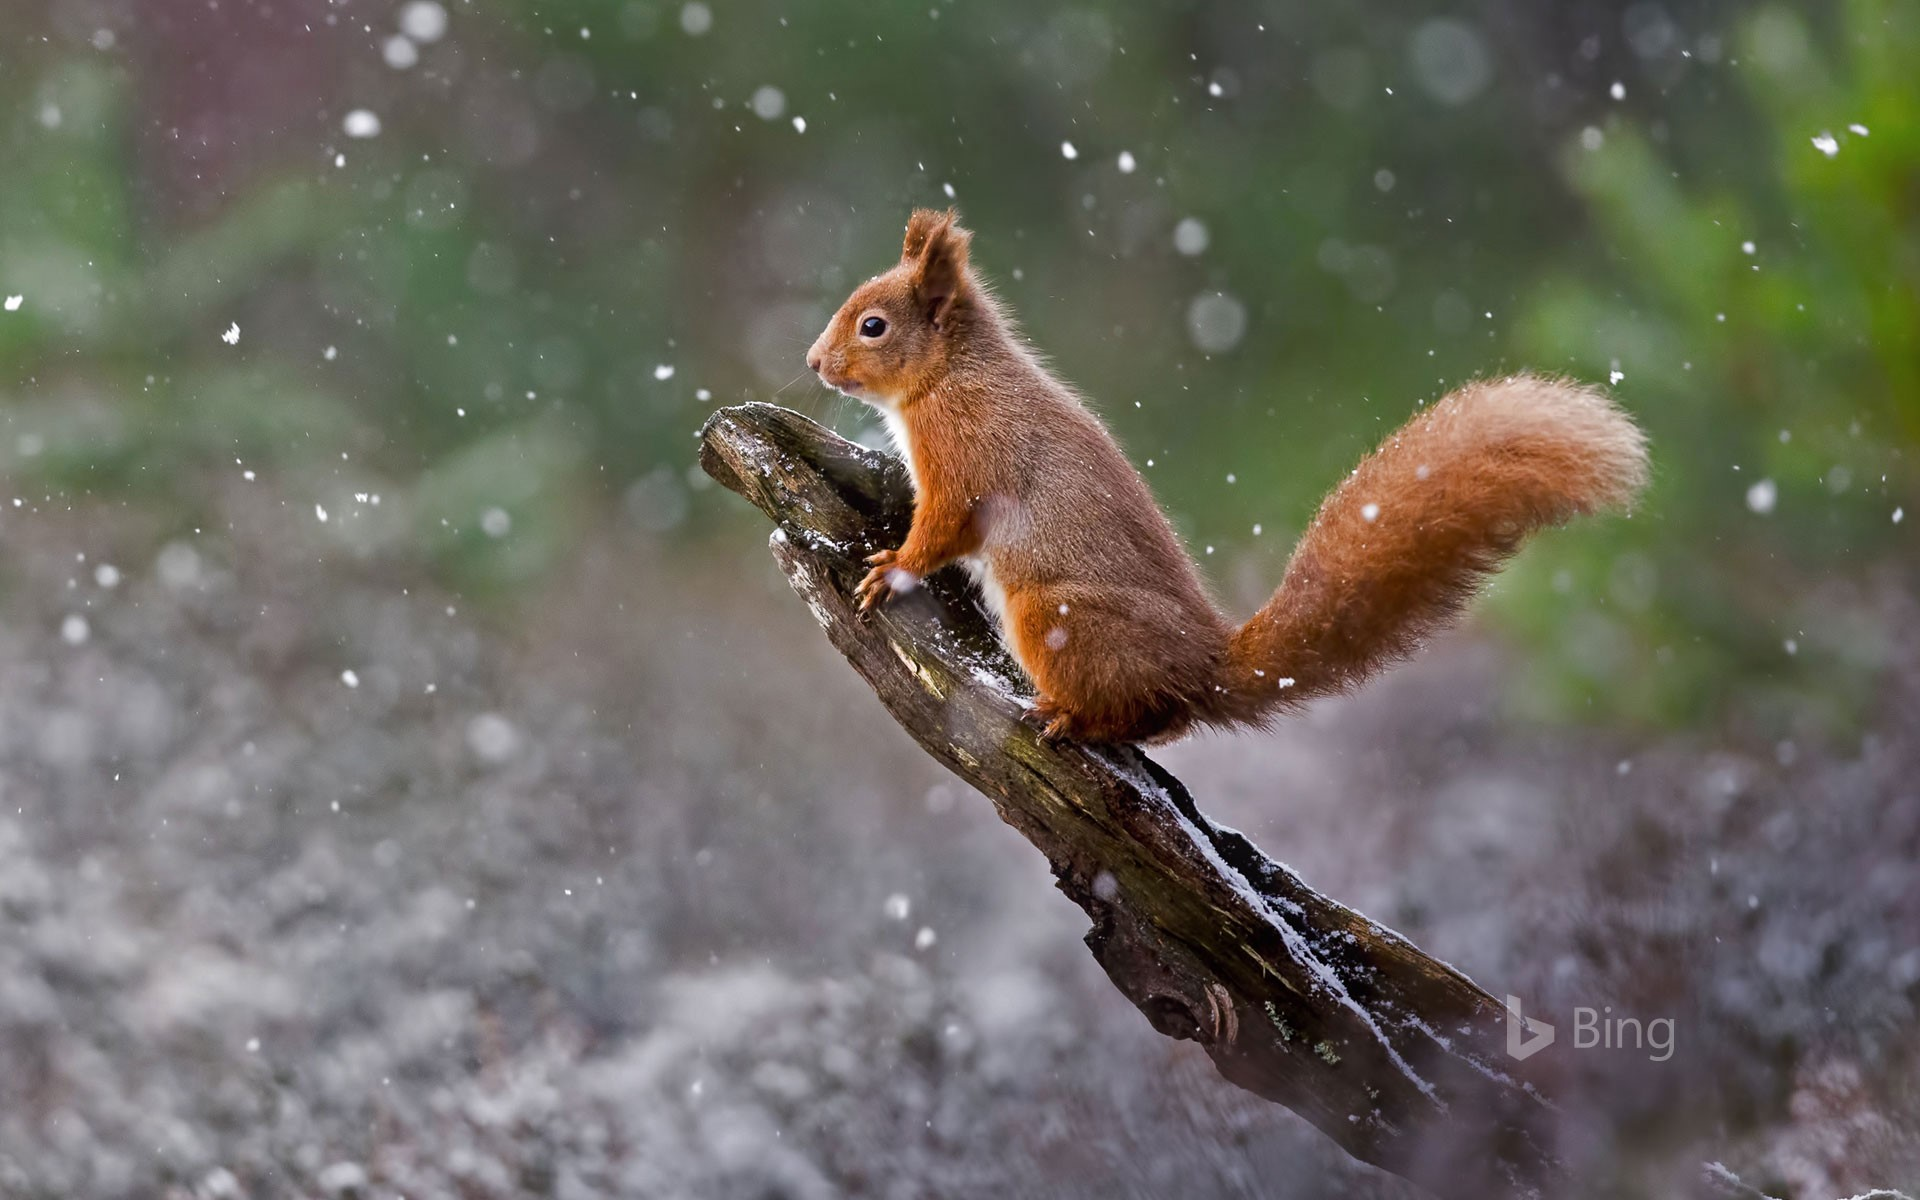 A red squirrel in Cairngorms National Park, Scotland